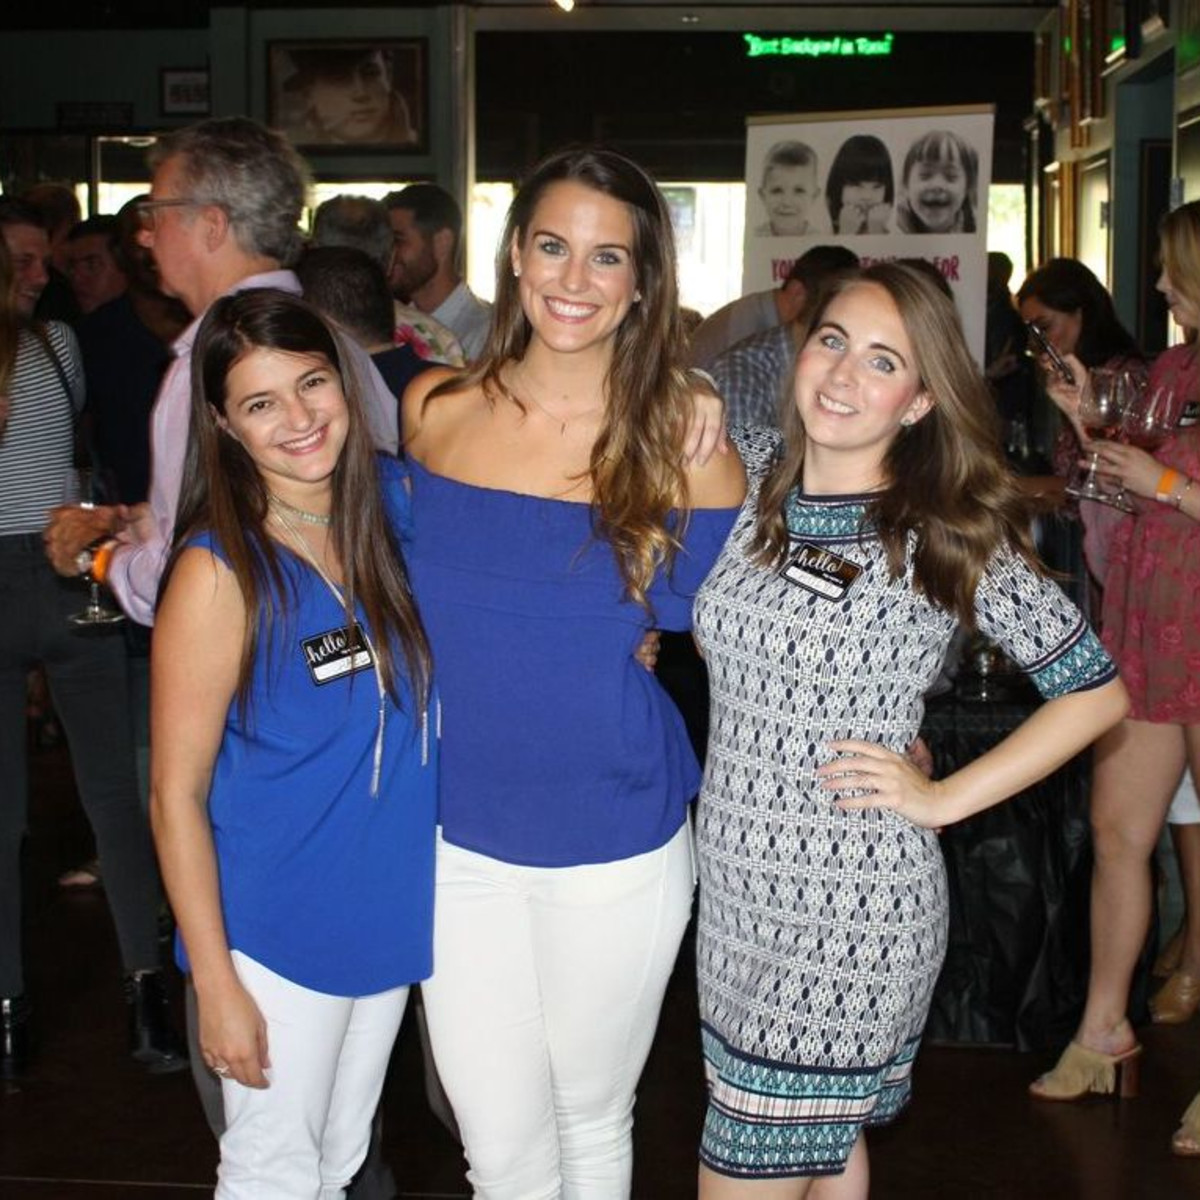 Houston, Houston Children's Charity, June 2017, Rachel Gordon, Alyx Haraway, Caitlyn Pesl